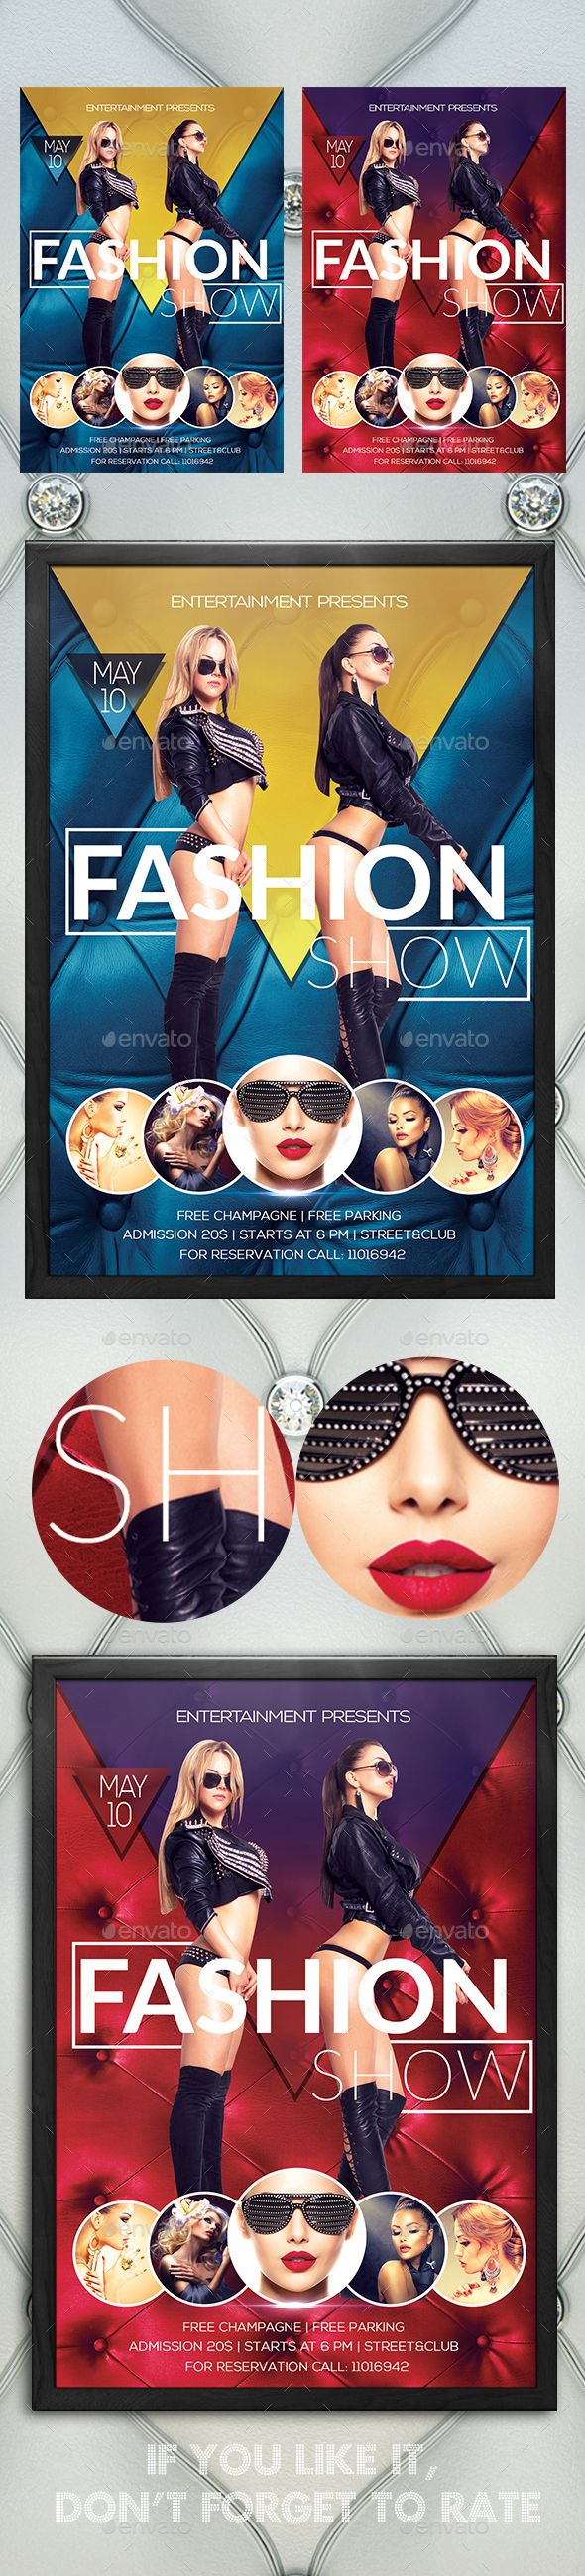 Fashion Show Flyer Template PSD. Download here: http://graphicriver.net/item/fashion-show/15300061?ref=ksioks